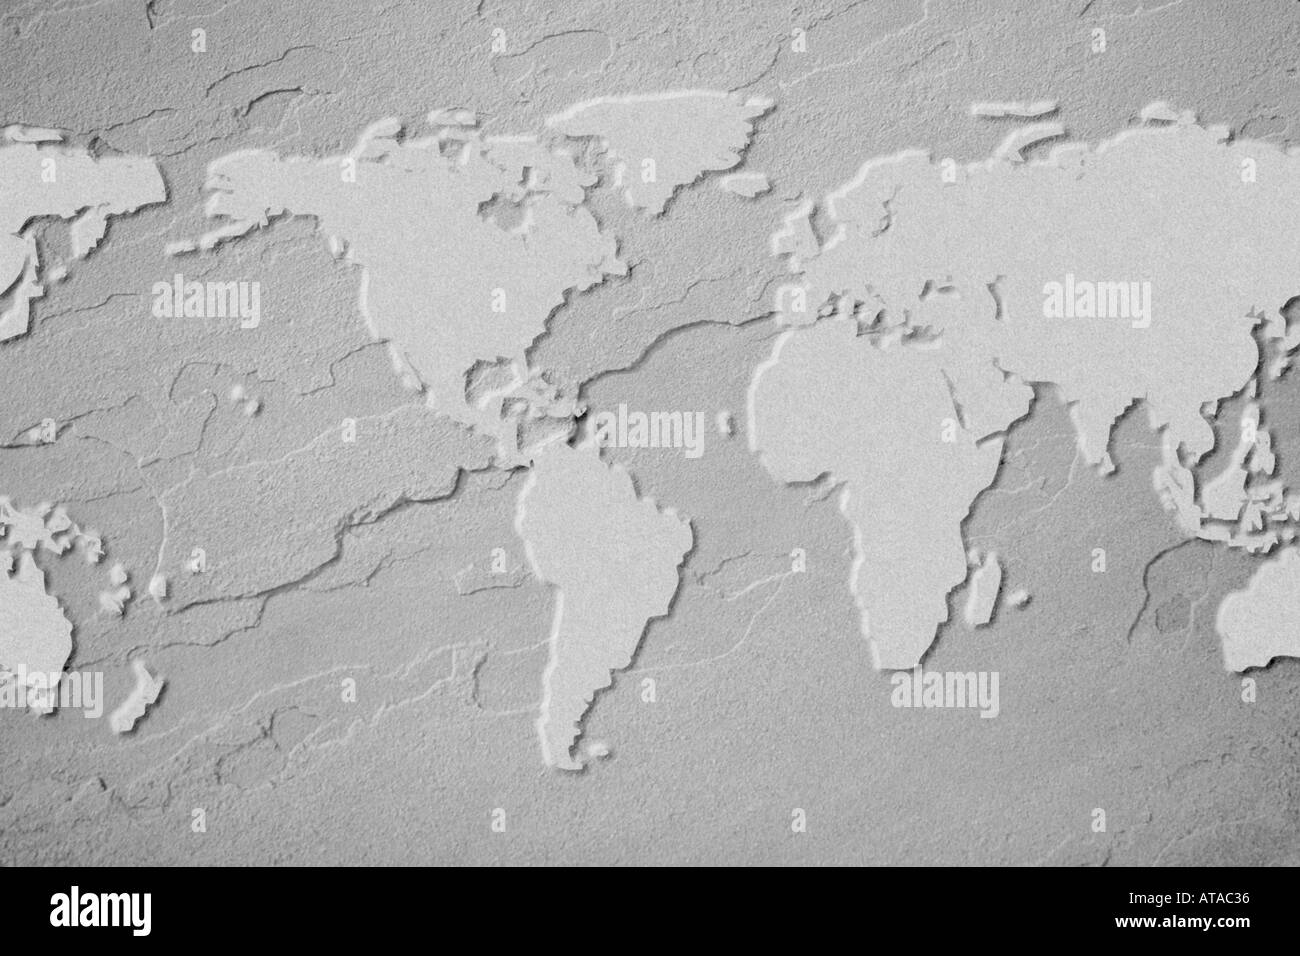 Outline of earth map on flagstone - Stock Image